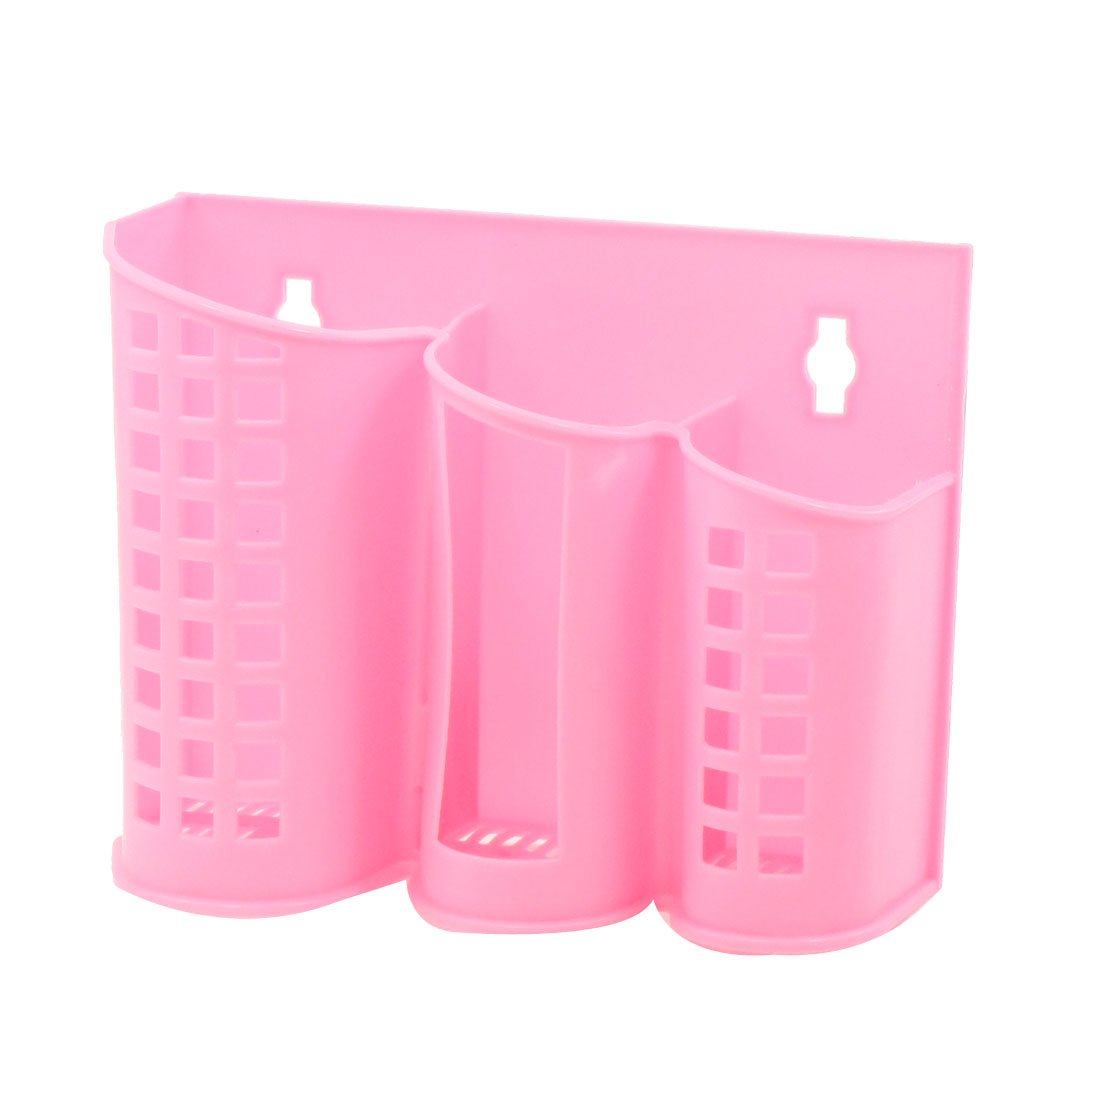 Home Kitchen Perforated 3 Compartments Plastic Hollow Grid Chopsticks Case Pink